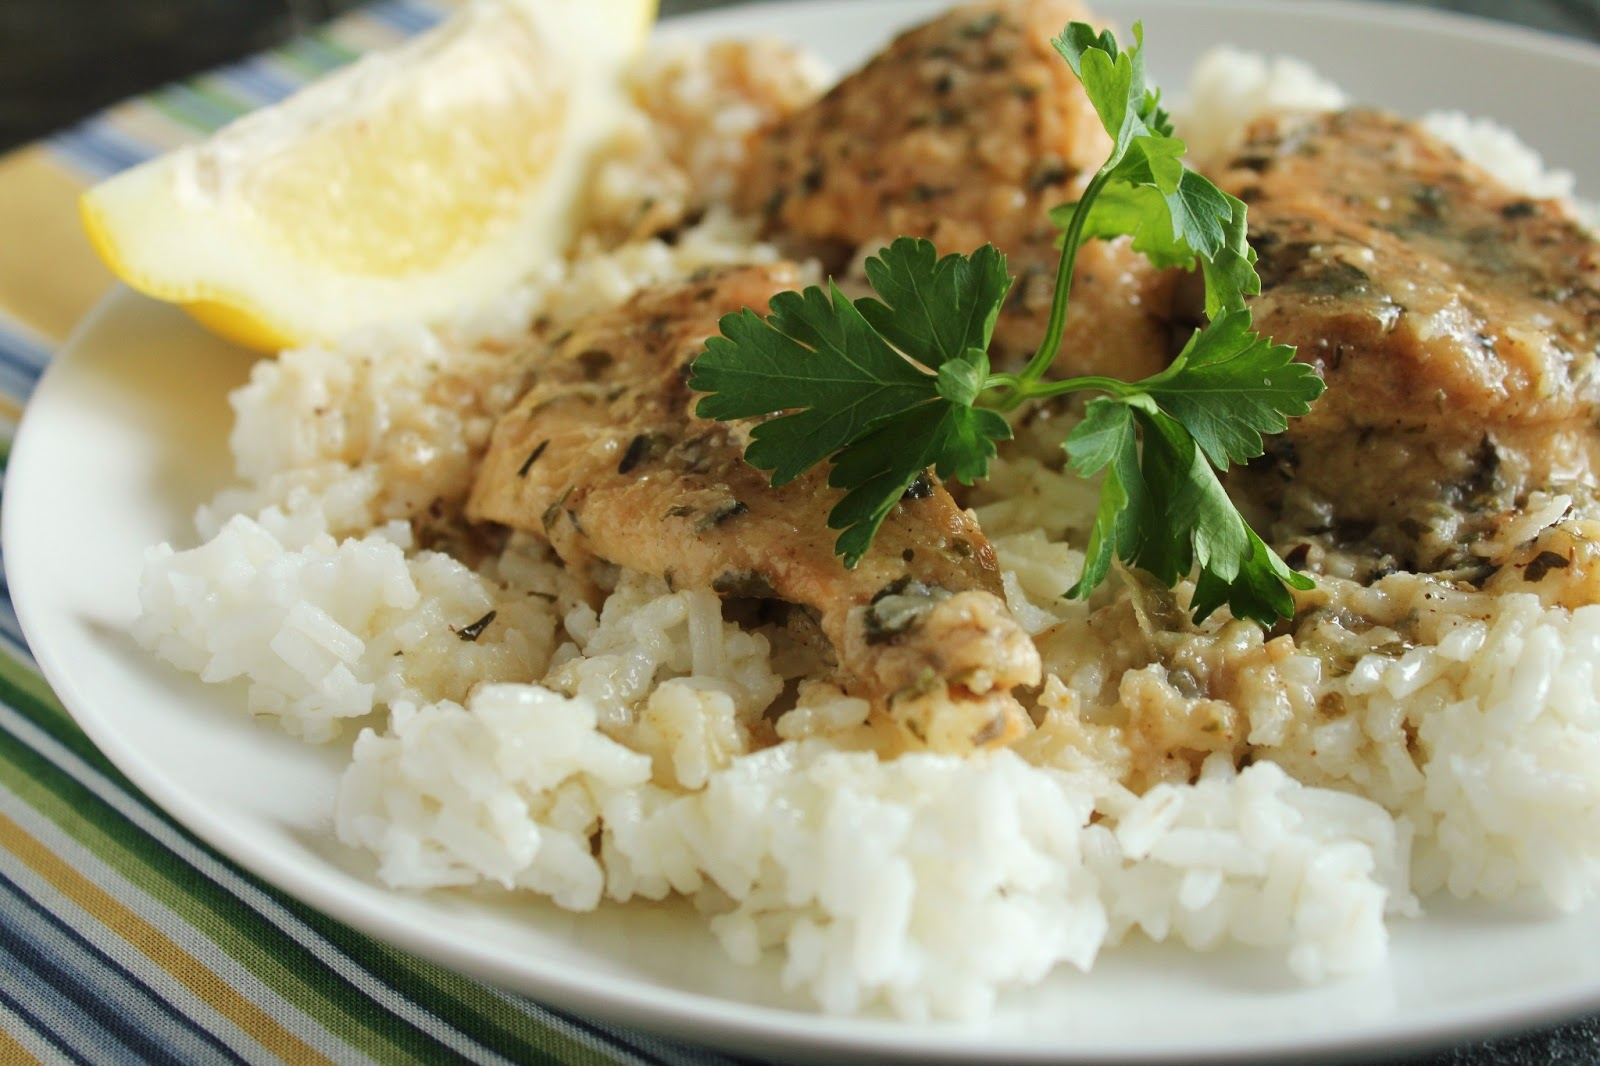 ... as it Looks: Low-Fructose Slow-Cooker Lemon Chicken (Gluten-Free Too